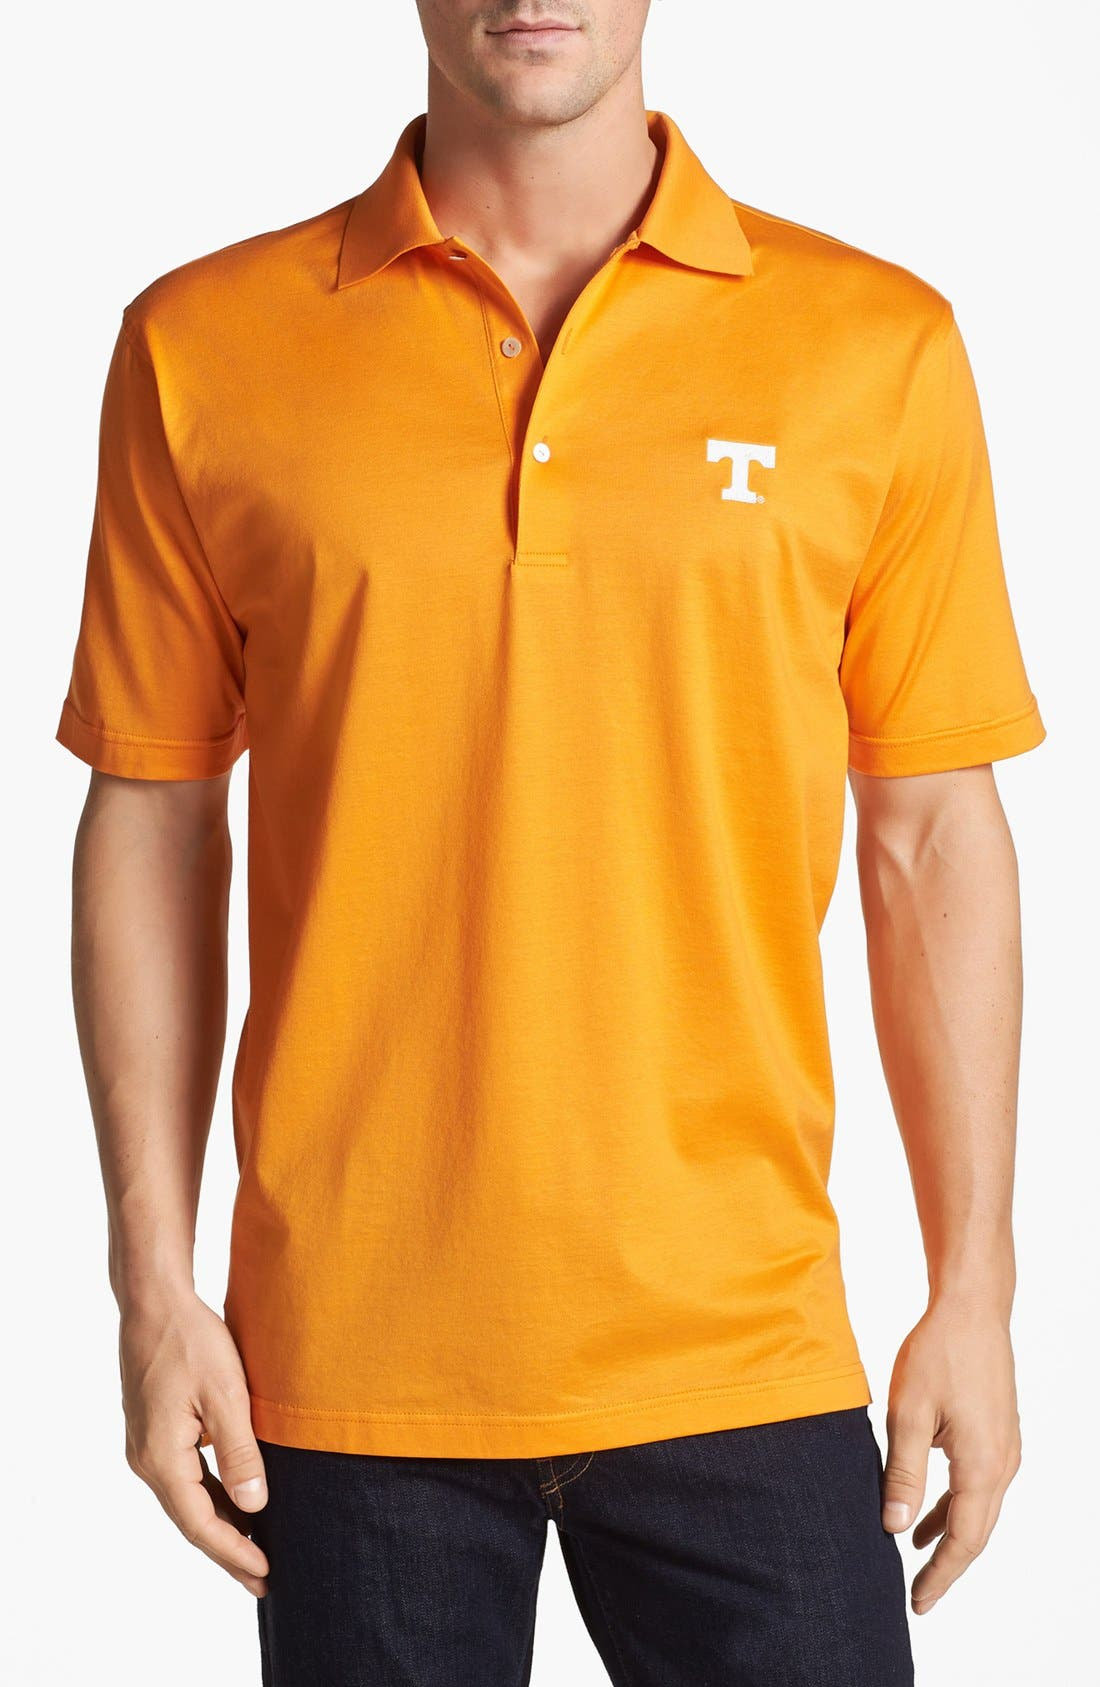 Alternate Image 1 Selected - Peter Millar 'University of Tennessee' Classic Polo